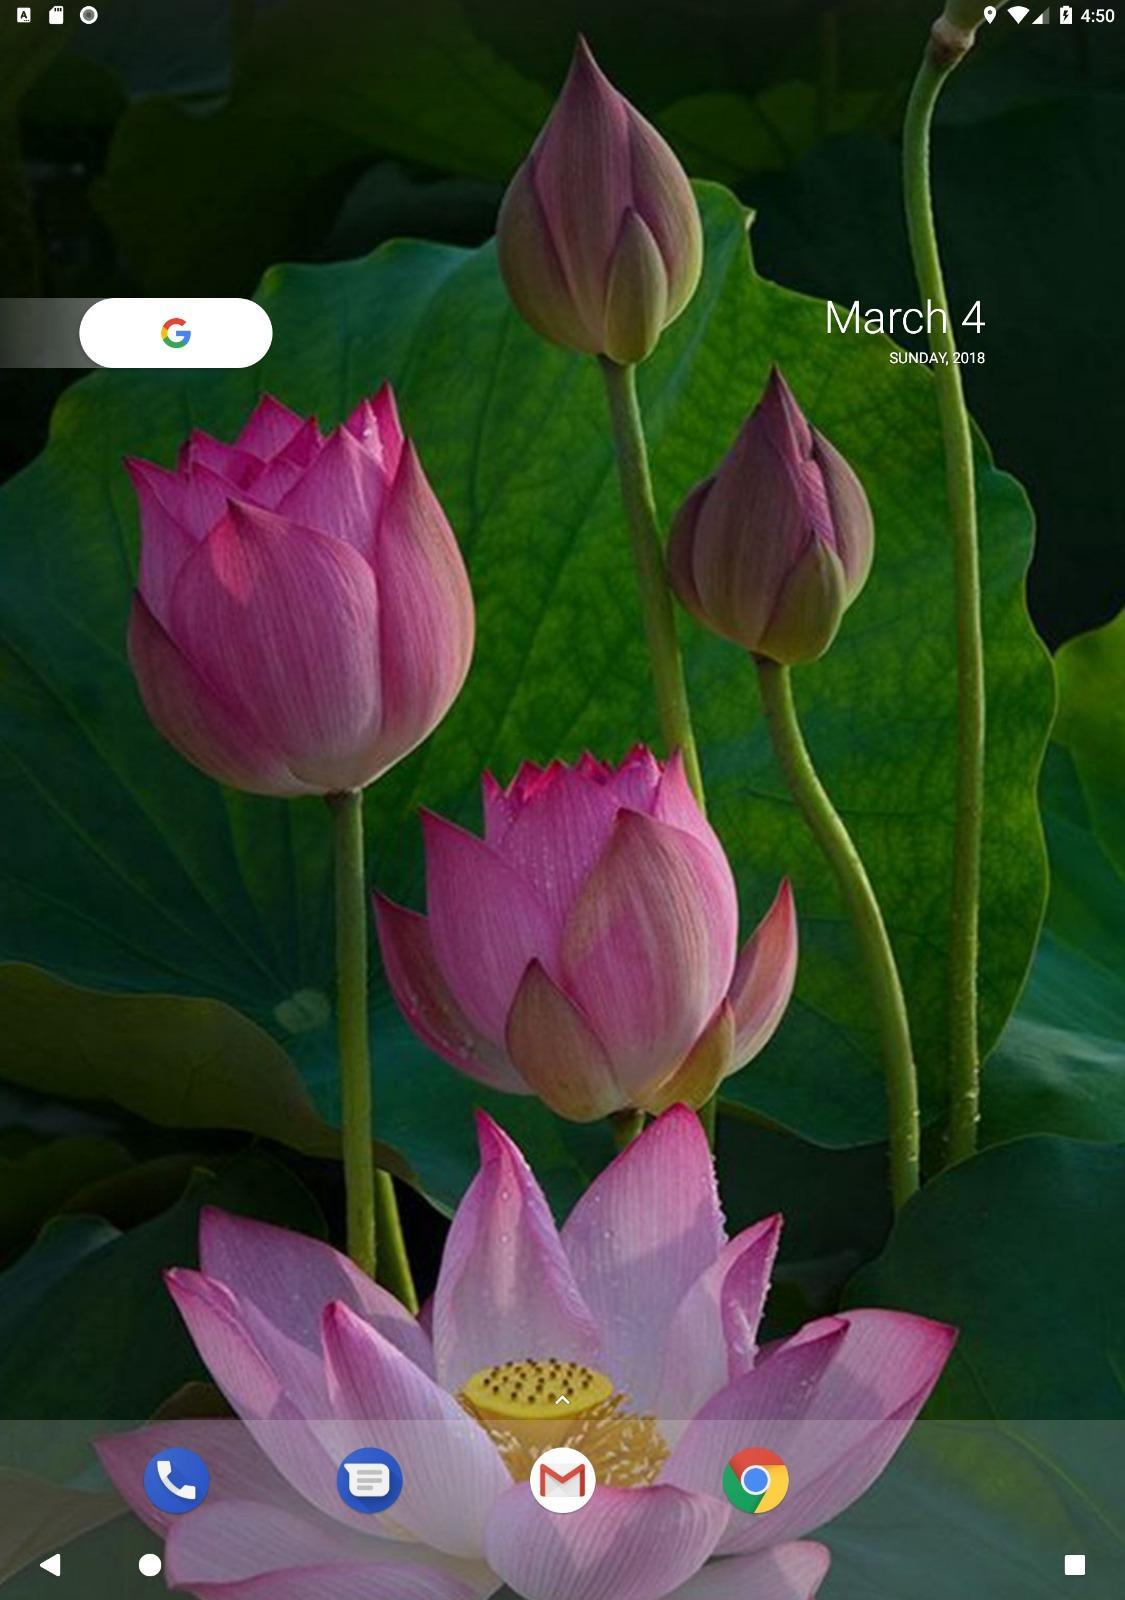 Lotus Wallpaper For Android Apk Download Images, Photos, Reviews